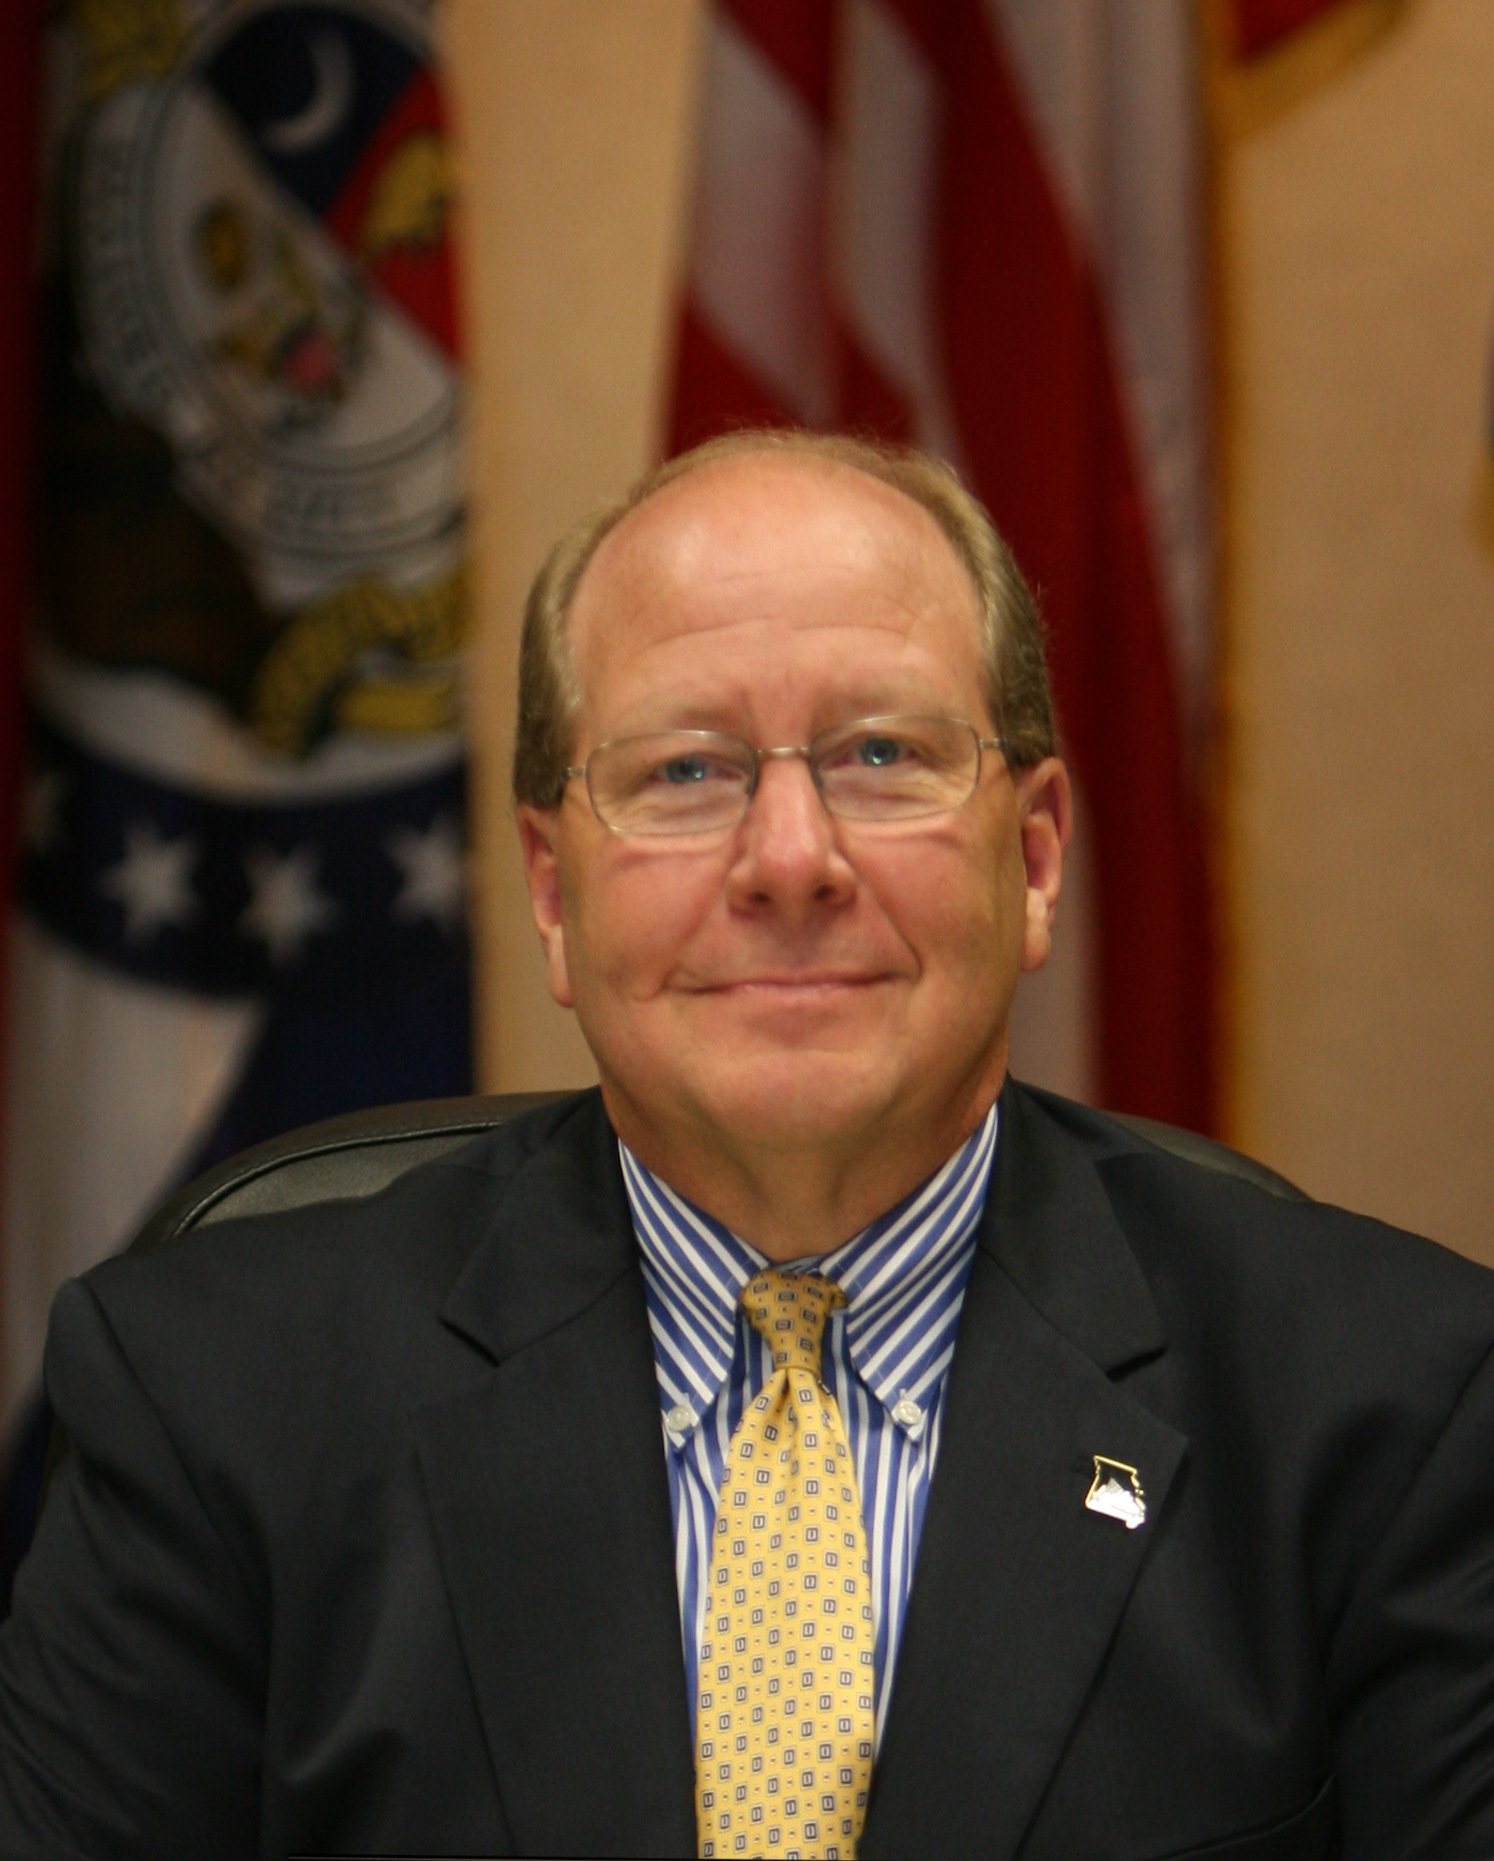 Councilmember Michael Seibert